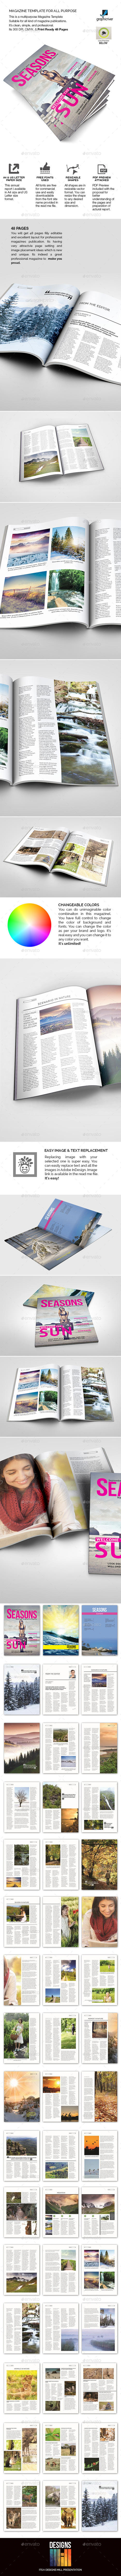 The Magazine Template - Magazines Print Templates